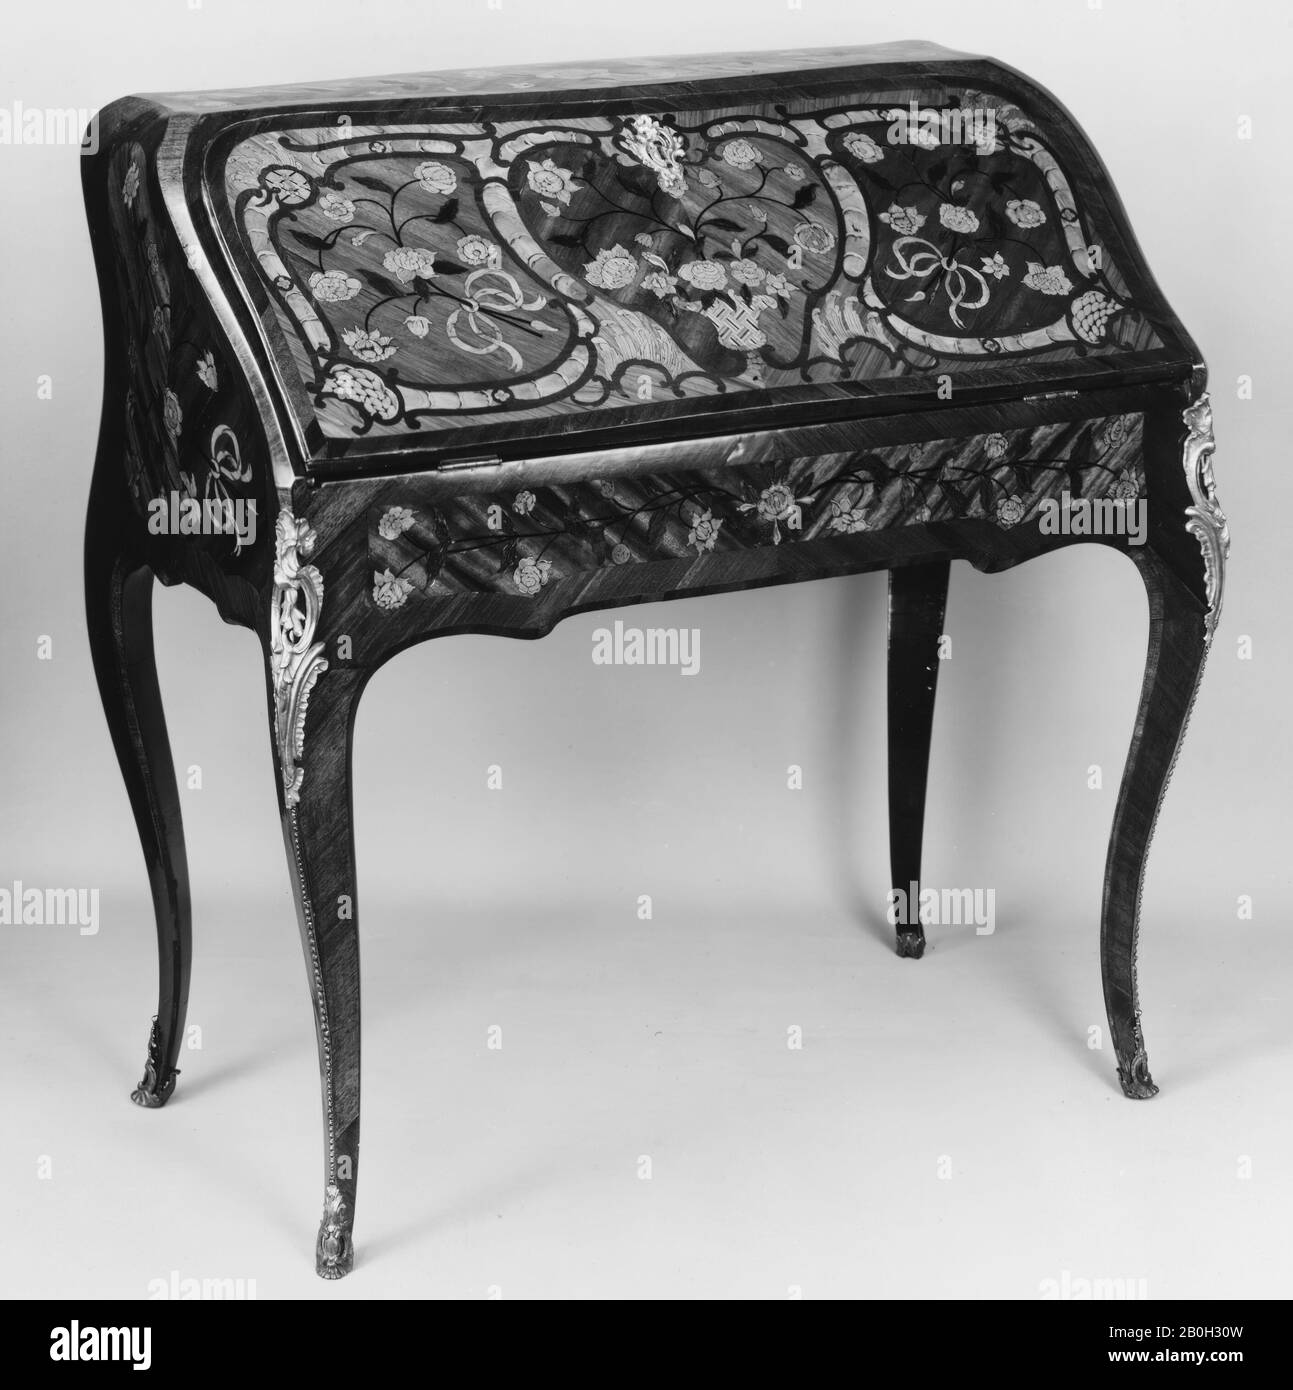 Jean Baptiste I Tuart Slant Top Desk French Jean Baptiste I Tuart Ca 1700 Ca 1767 Master 1741 Mid 18th Century French Tulipwood Satine Satinwood Kingwood And Green Stained Wood Leather 38 36 1 2 20 In